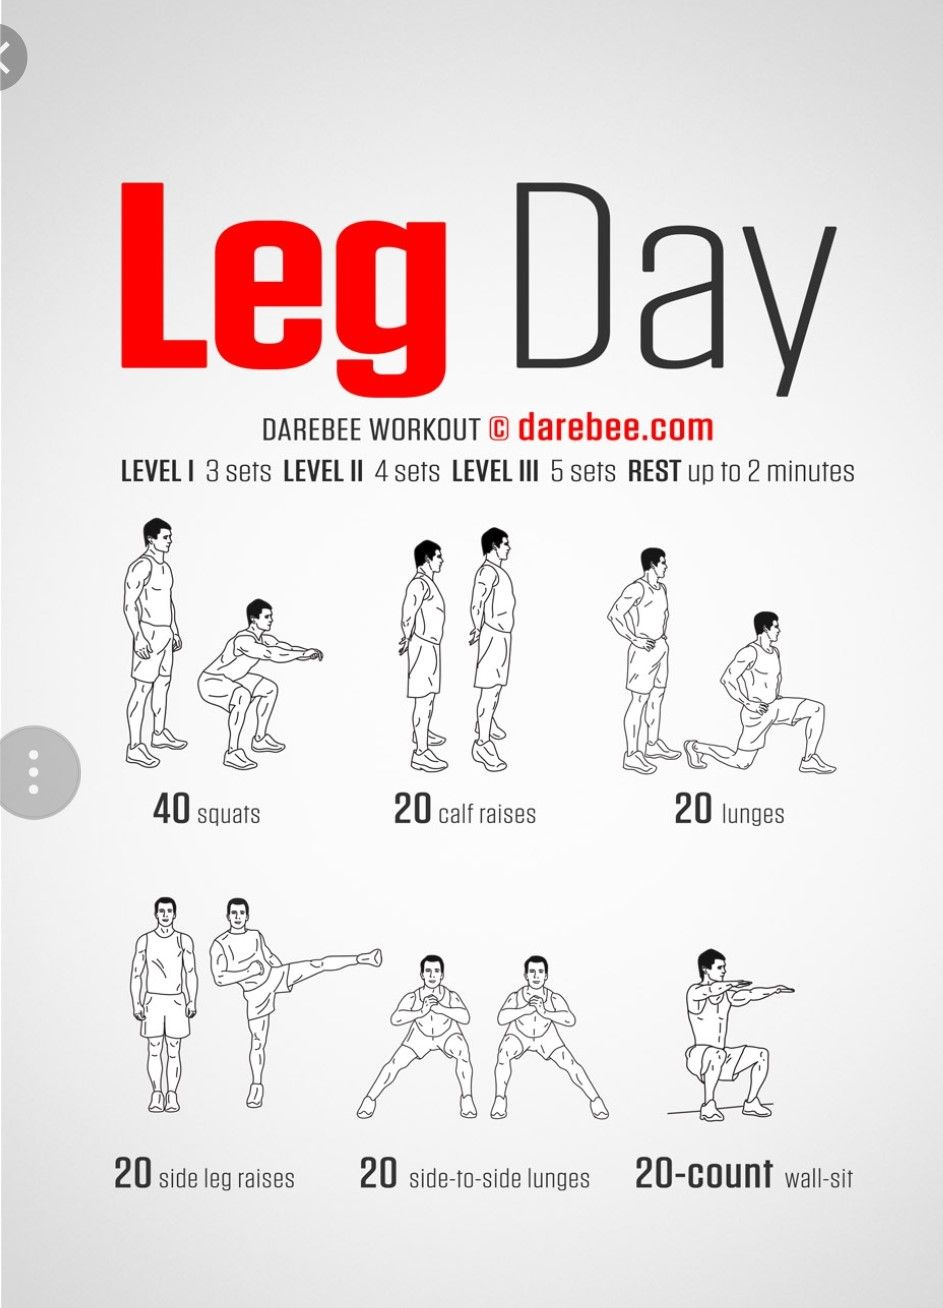 Pin By Christa Conrad On Fitness Volleyball Workouts Basketball Workouts Workout Plan